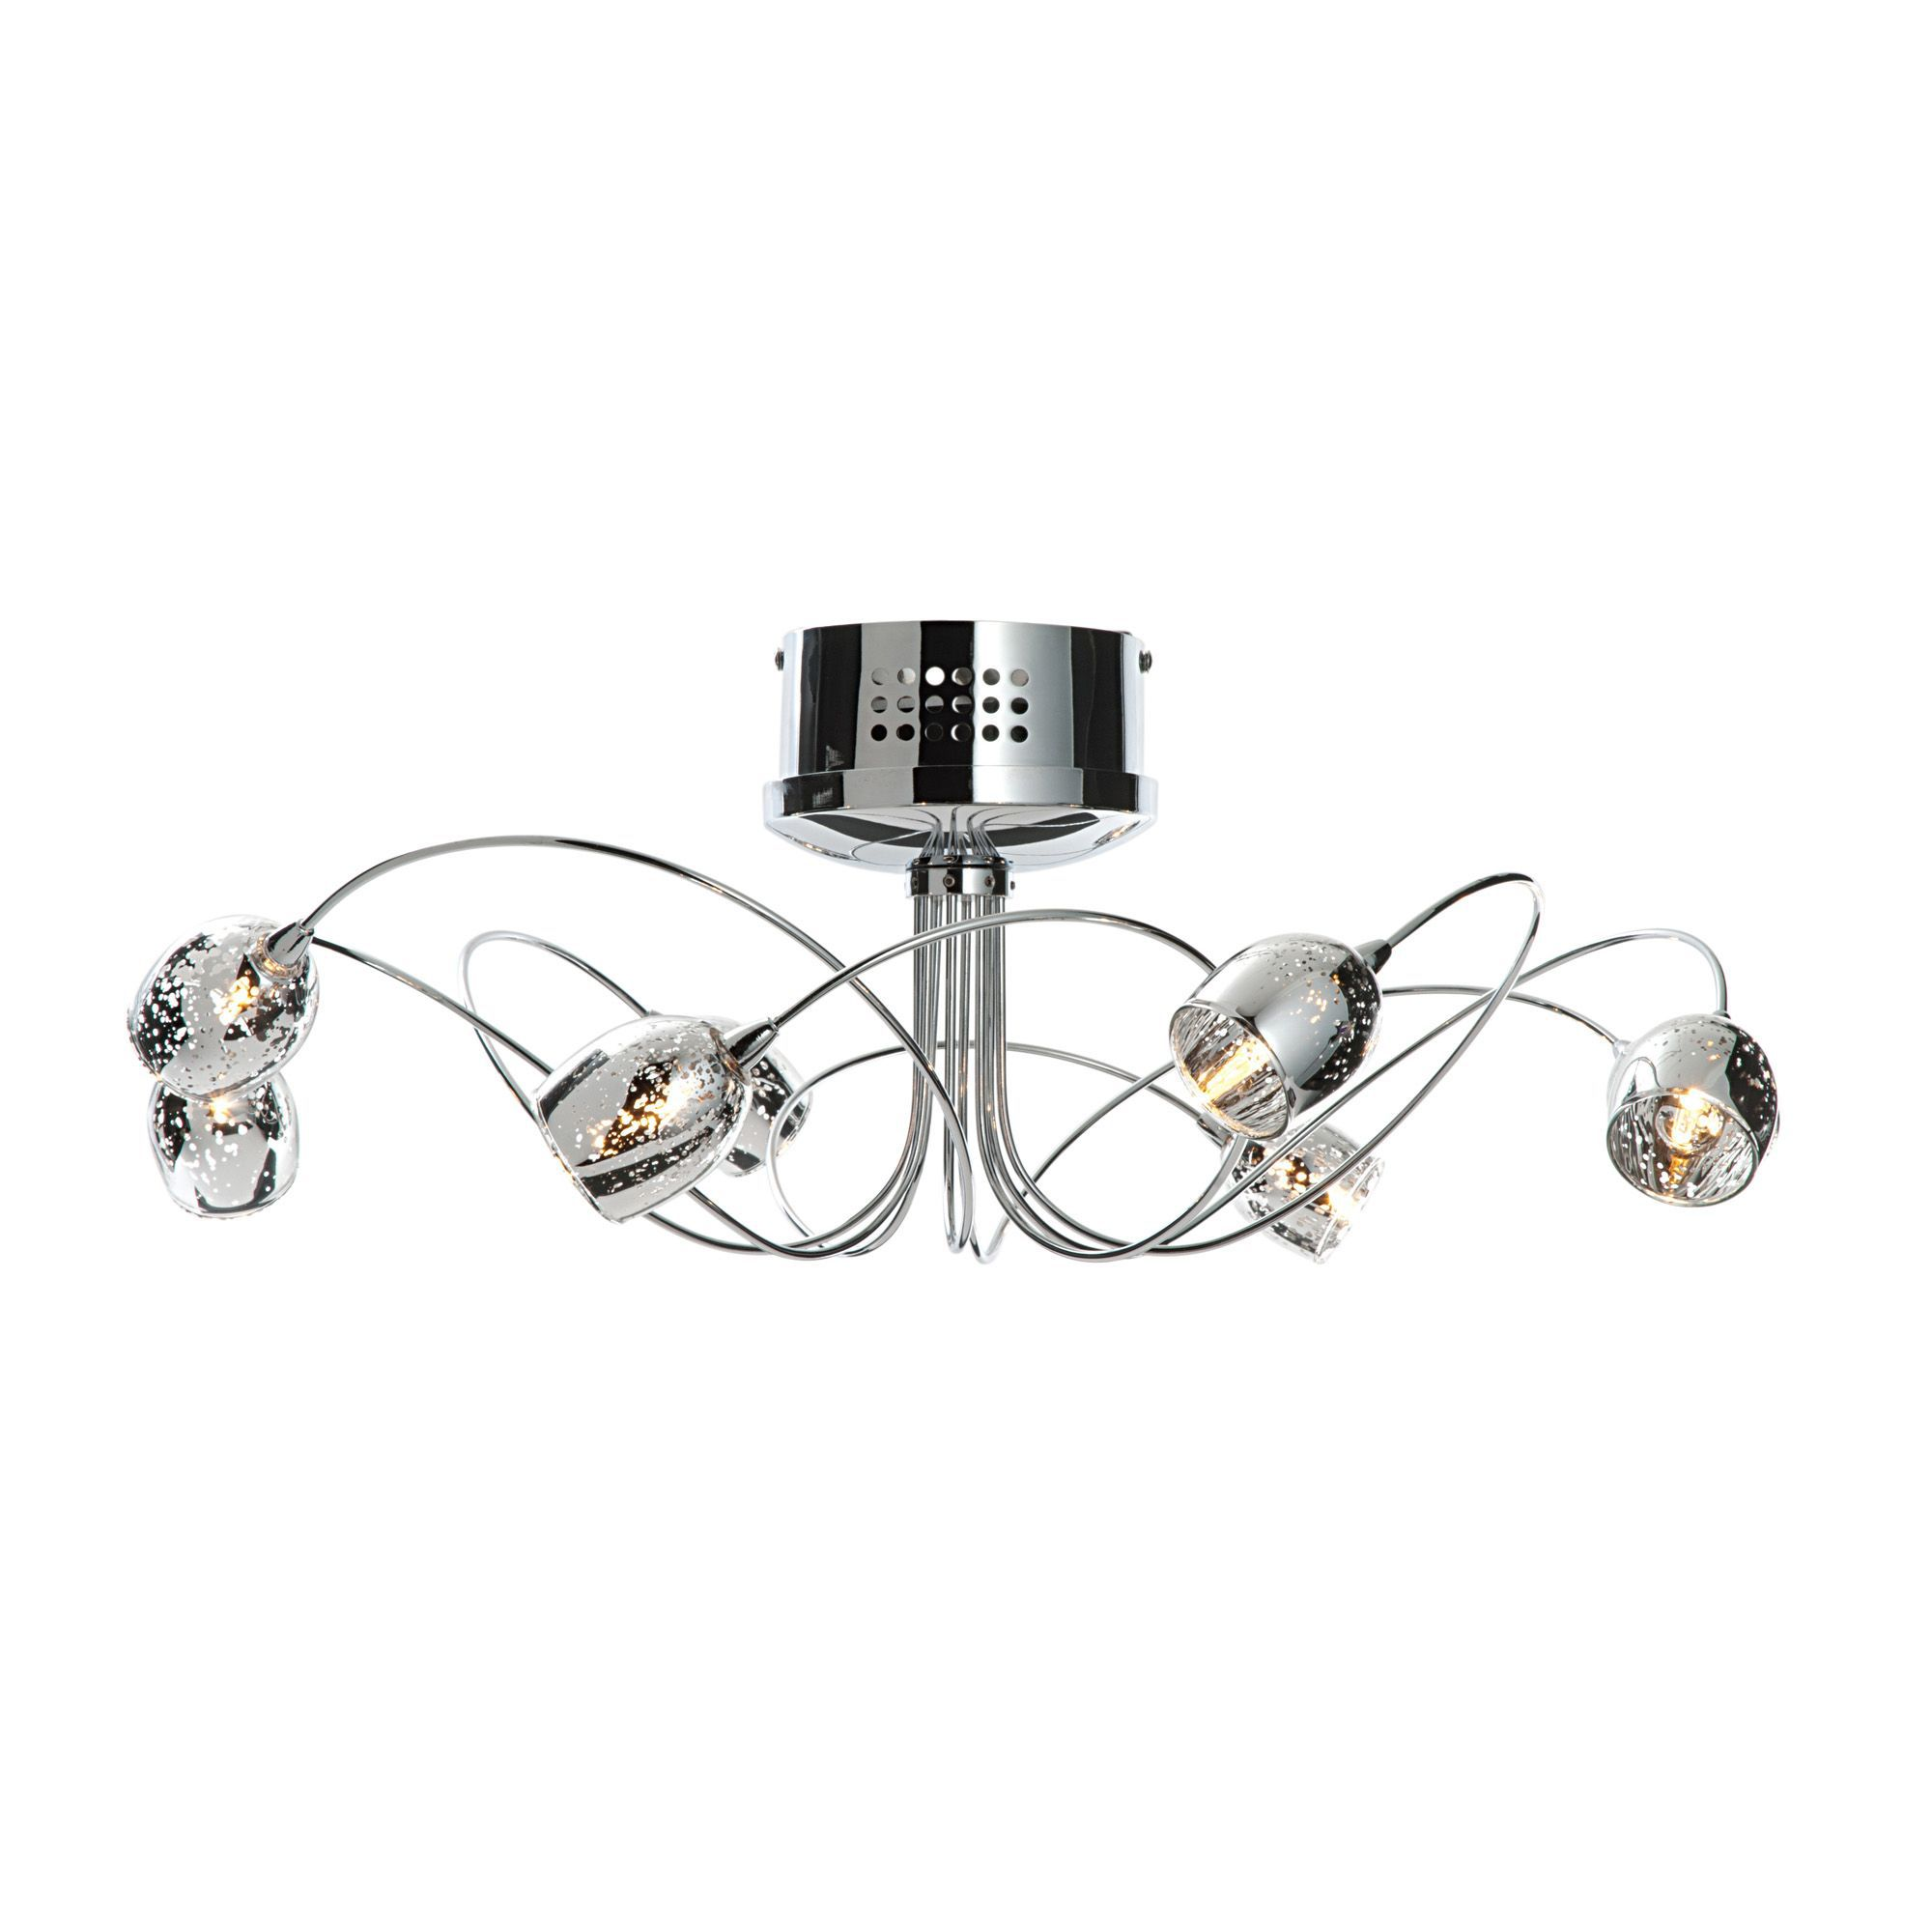 aero chrome effect 8 lamp semi flush ceiling light